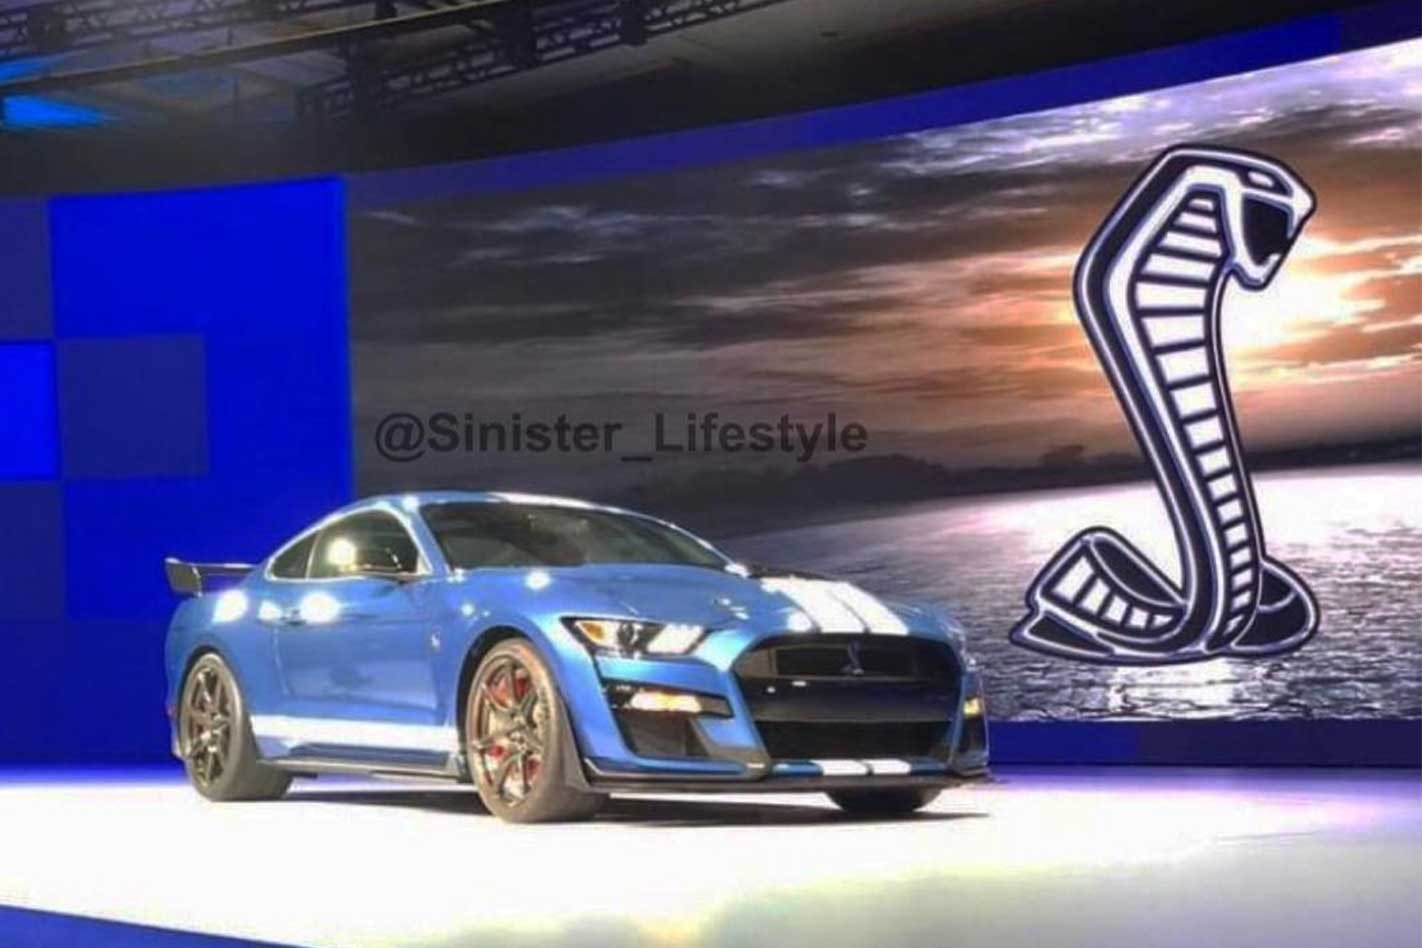 2019 ford mustang shelby gt500 image leaked